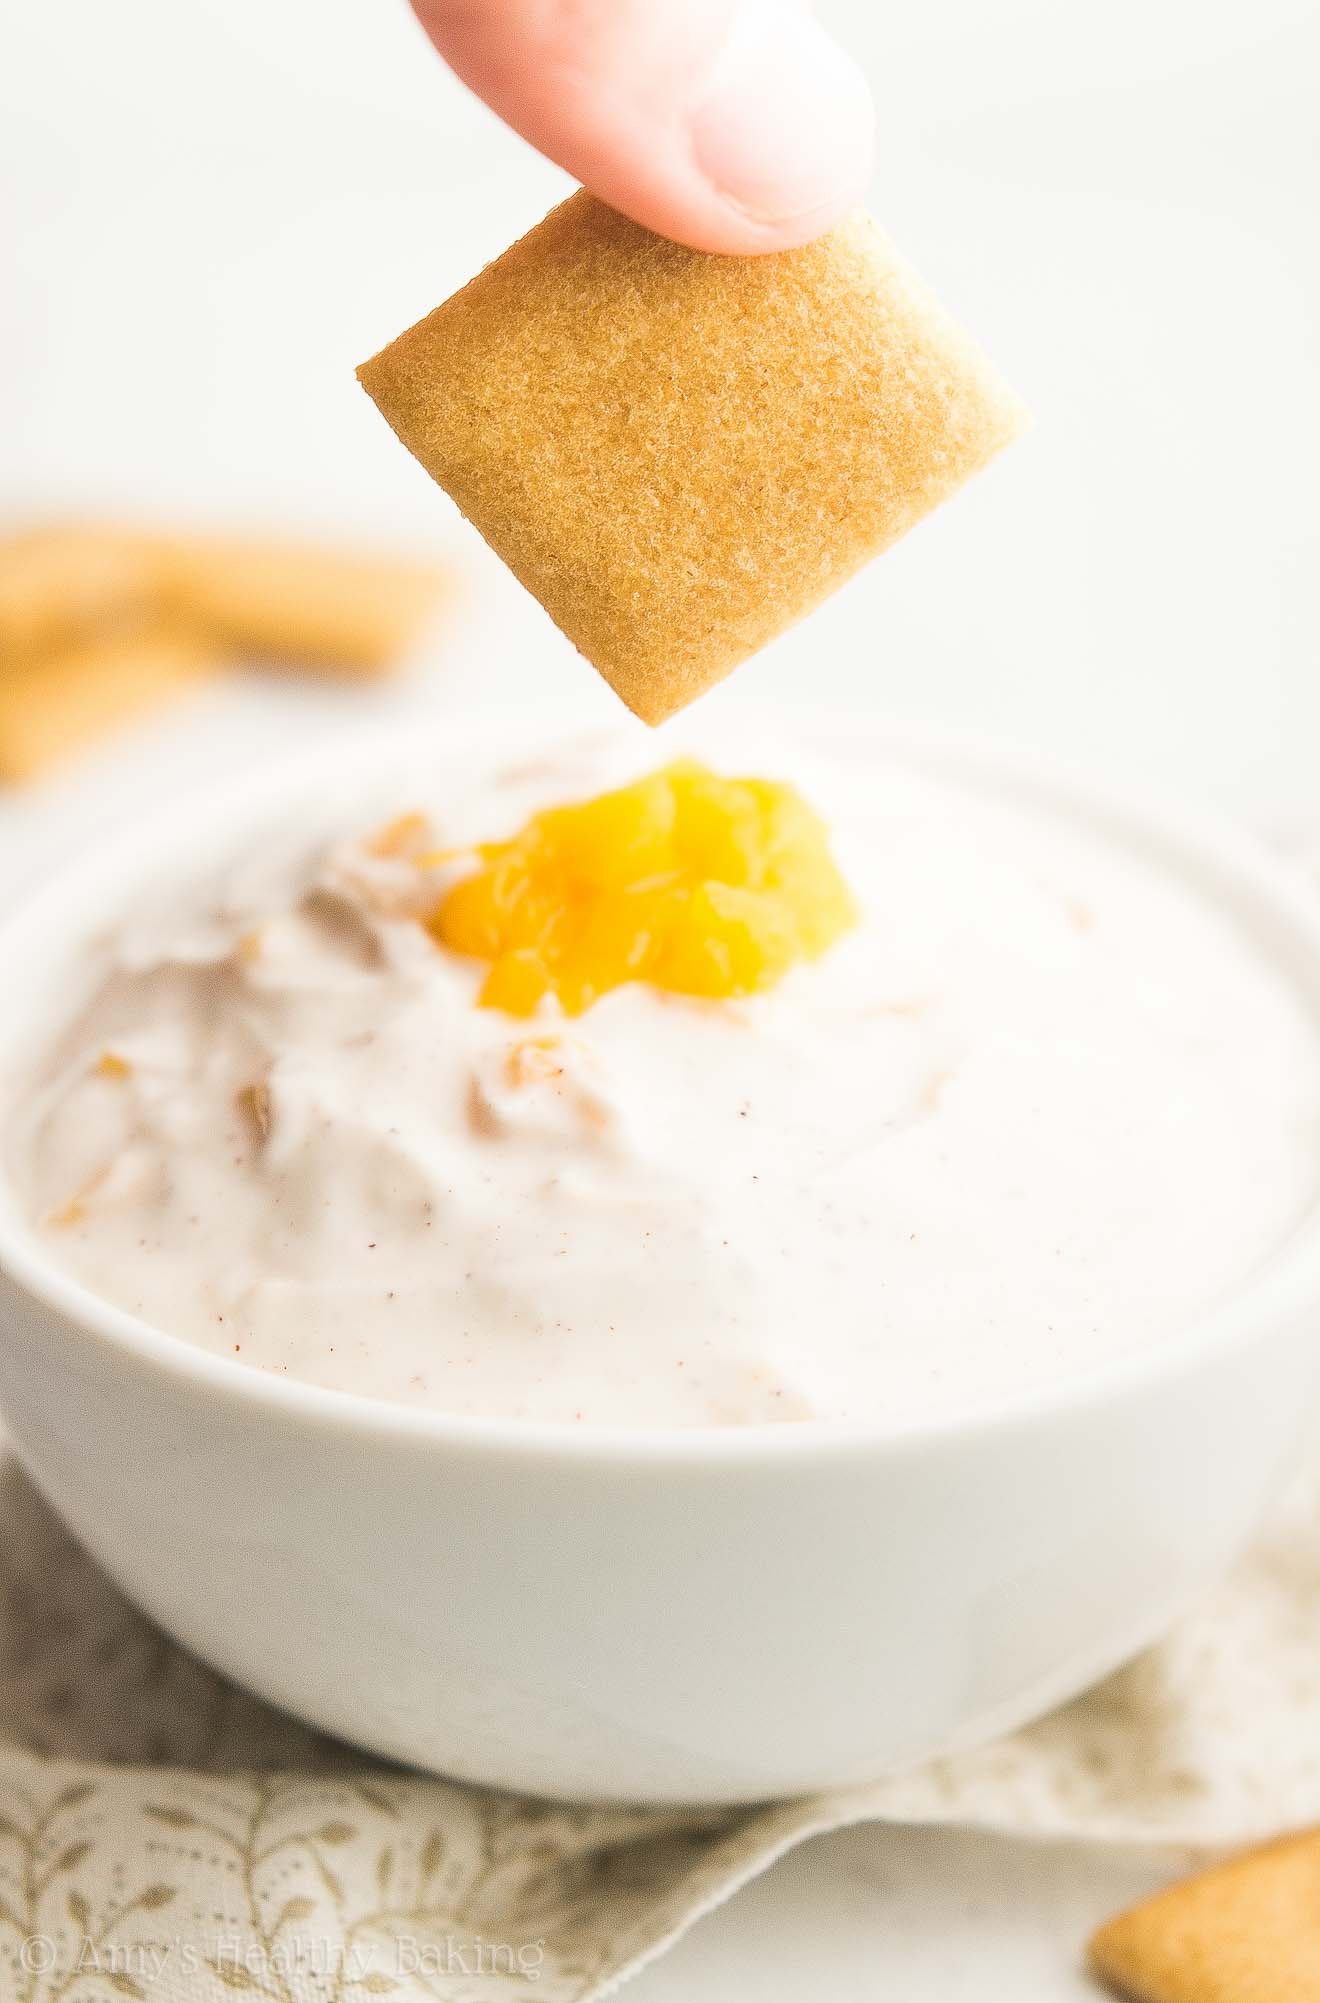 Peach Pie Protein Dip + Healthy Sugar Cookie Dippers -- the perfect summer recipe! Only 109 calories & so easy! Snacks, desserts, picnics, BBQs, 4th of July... Everyone goes CRAZY for this whenever I make it!